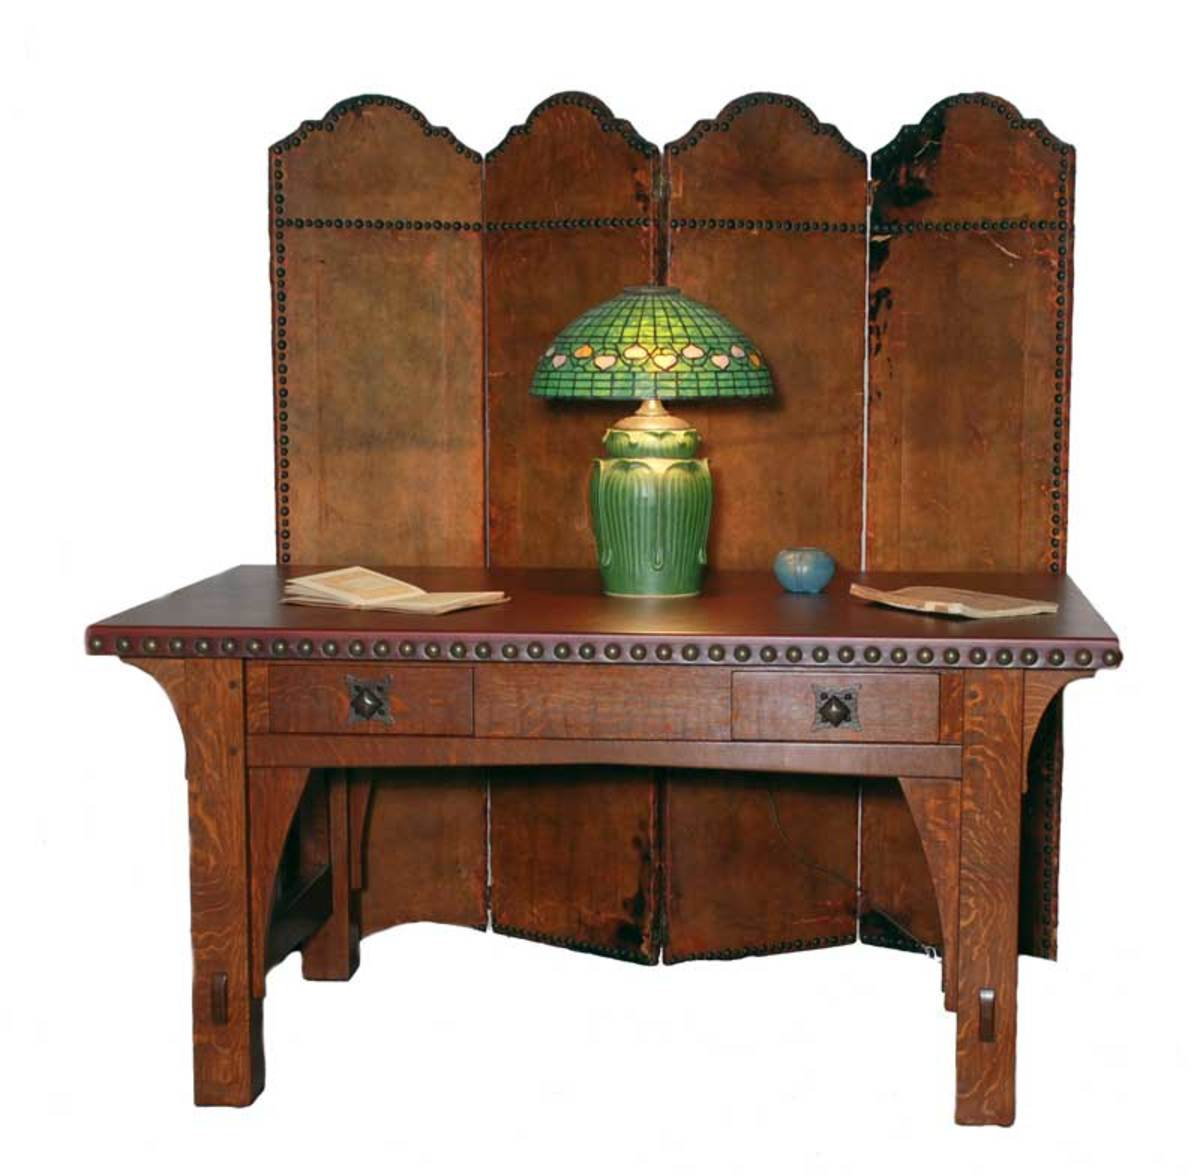 The couple owns the only known example of a 1901 four-panel leather screen, shown with their re-creation of an exceptionally rare Gustav Stickley leather-top table, also from 1901.